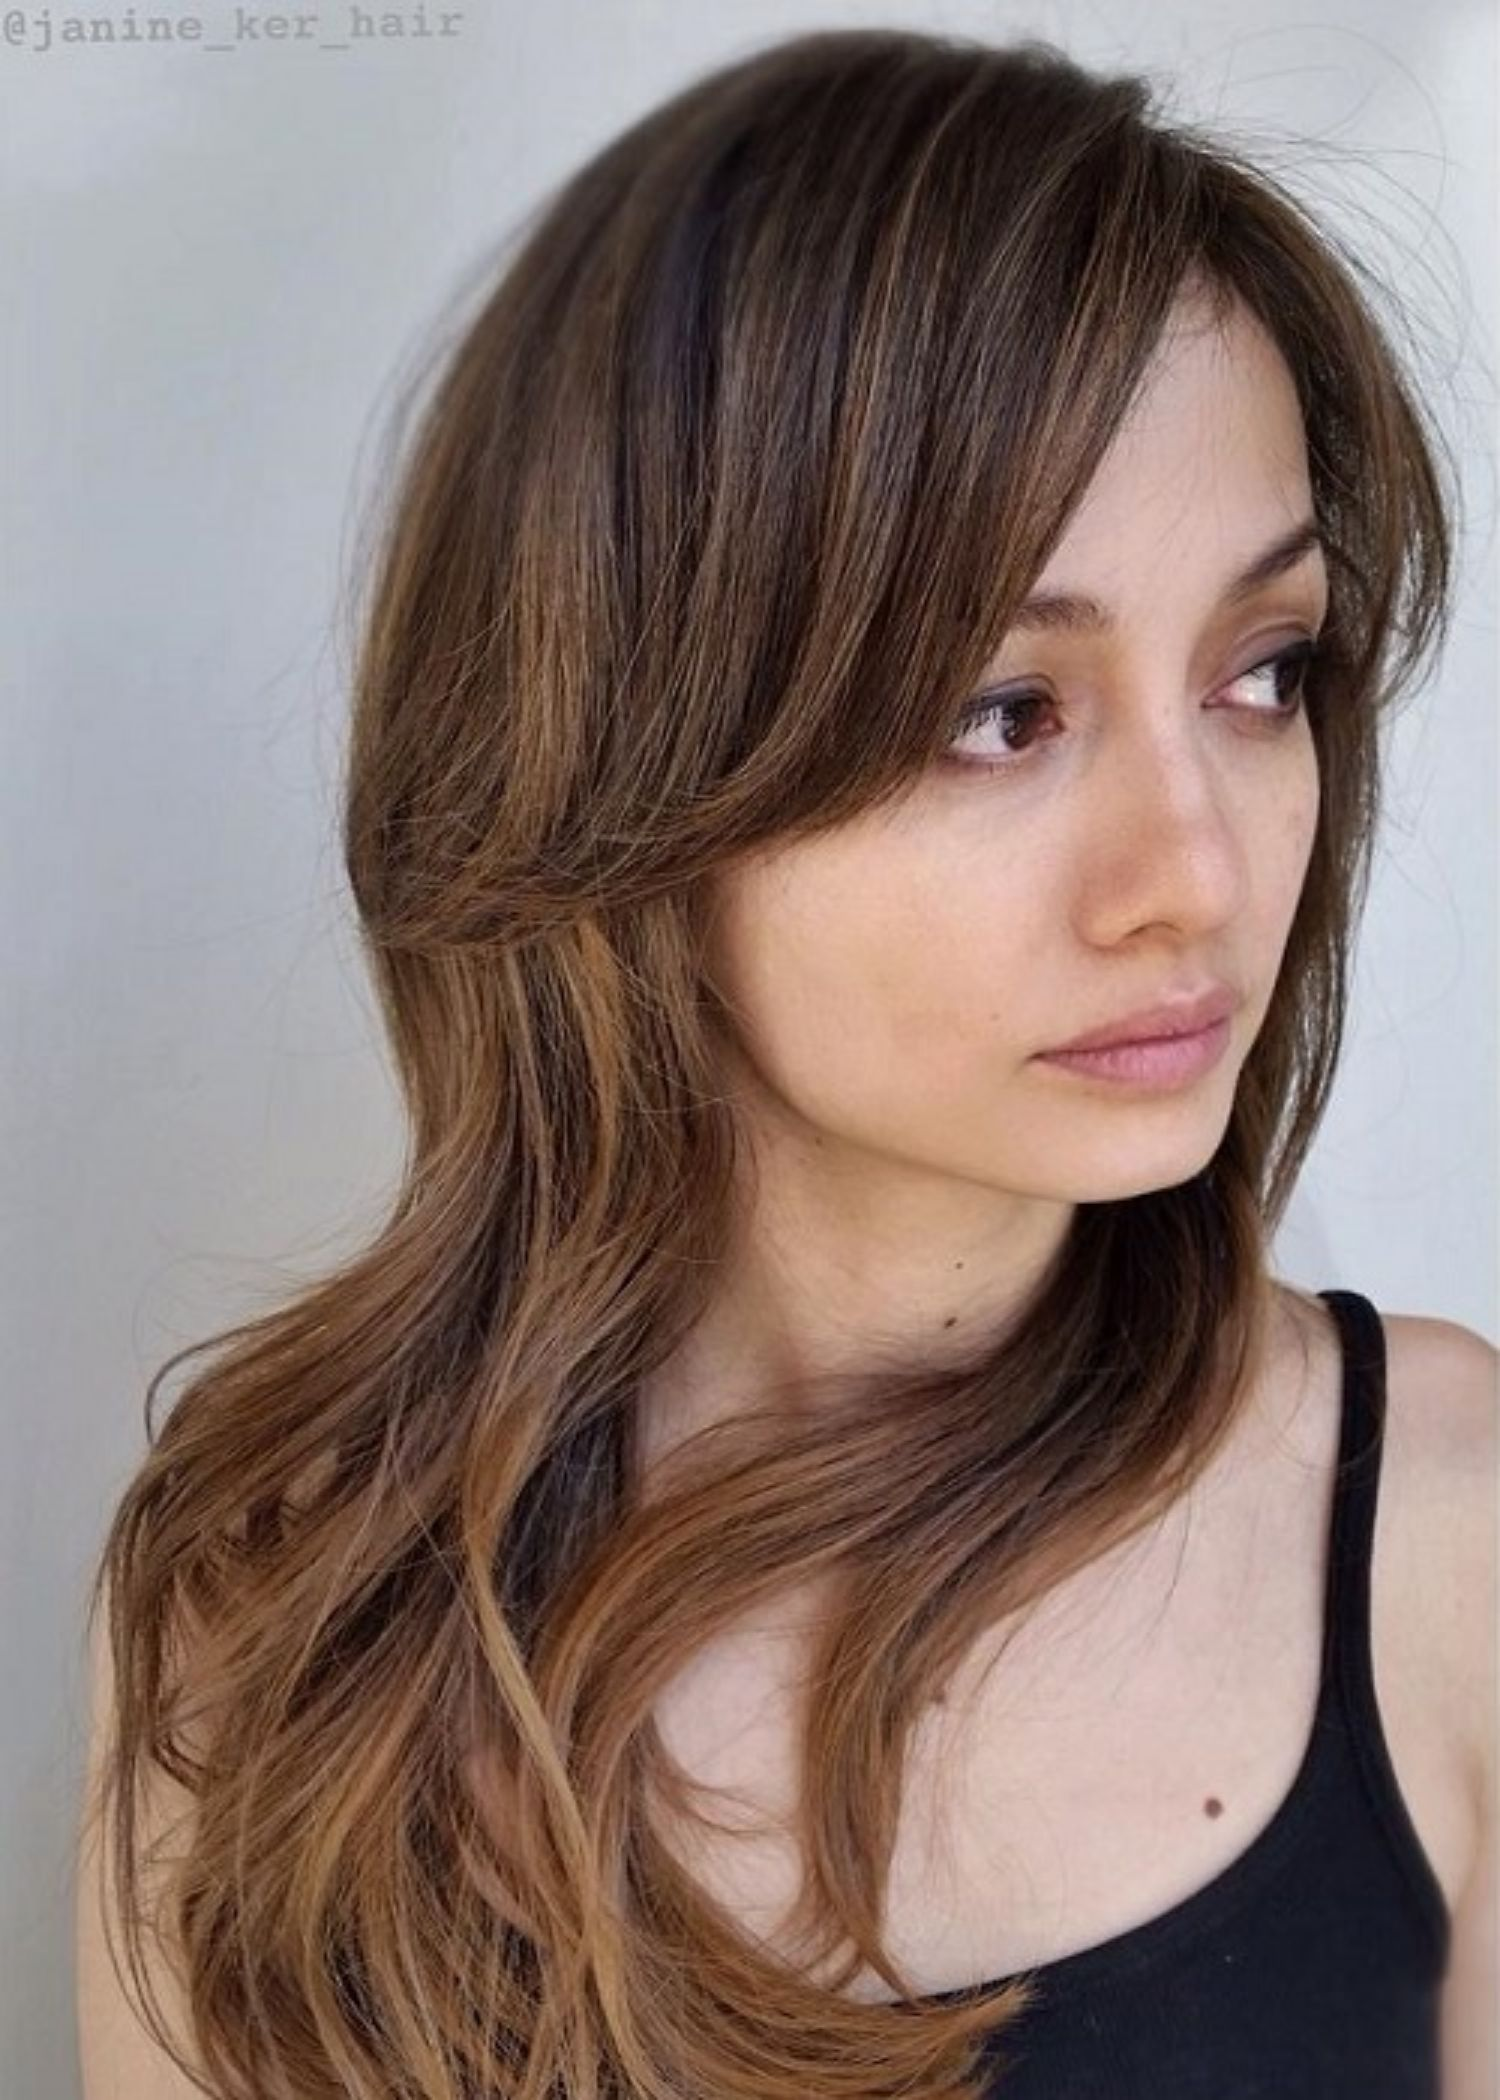 50 Best Hairstyles For Square Faces Rounding The Angles Styles